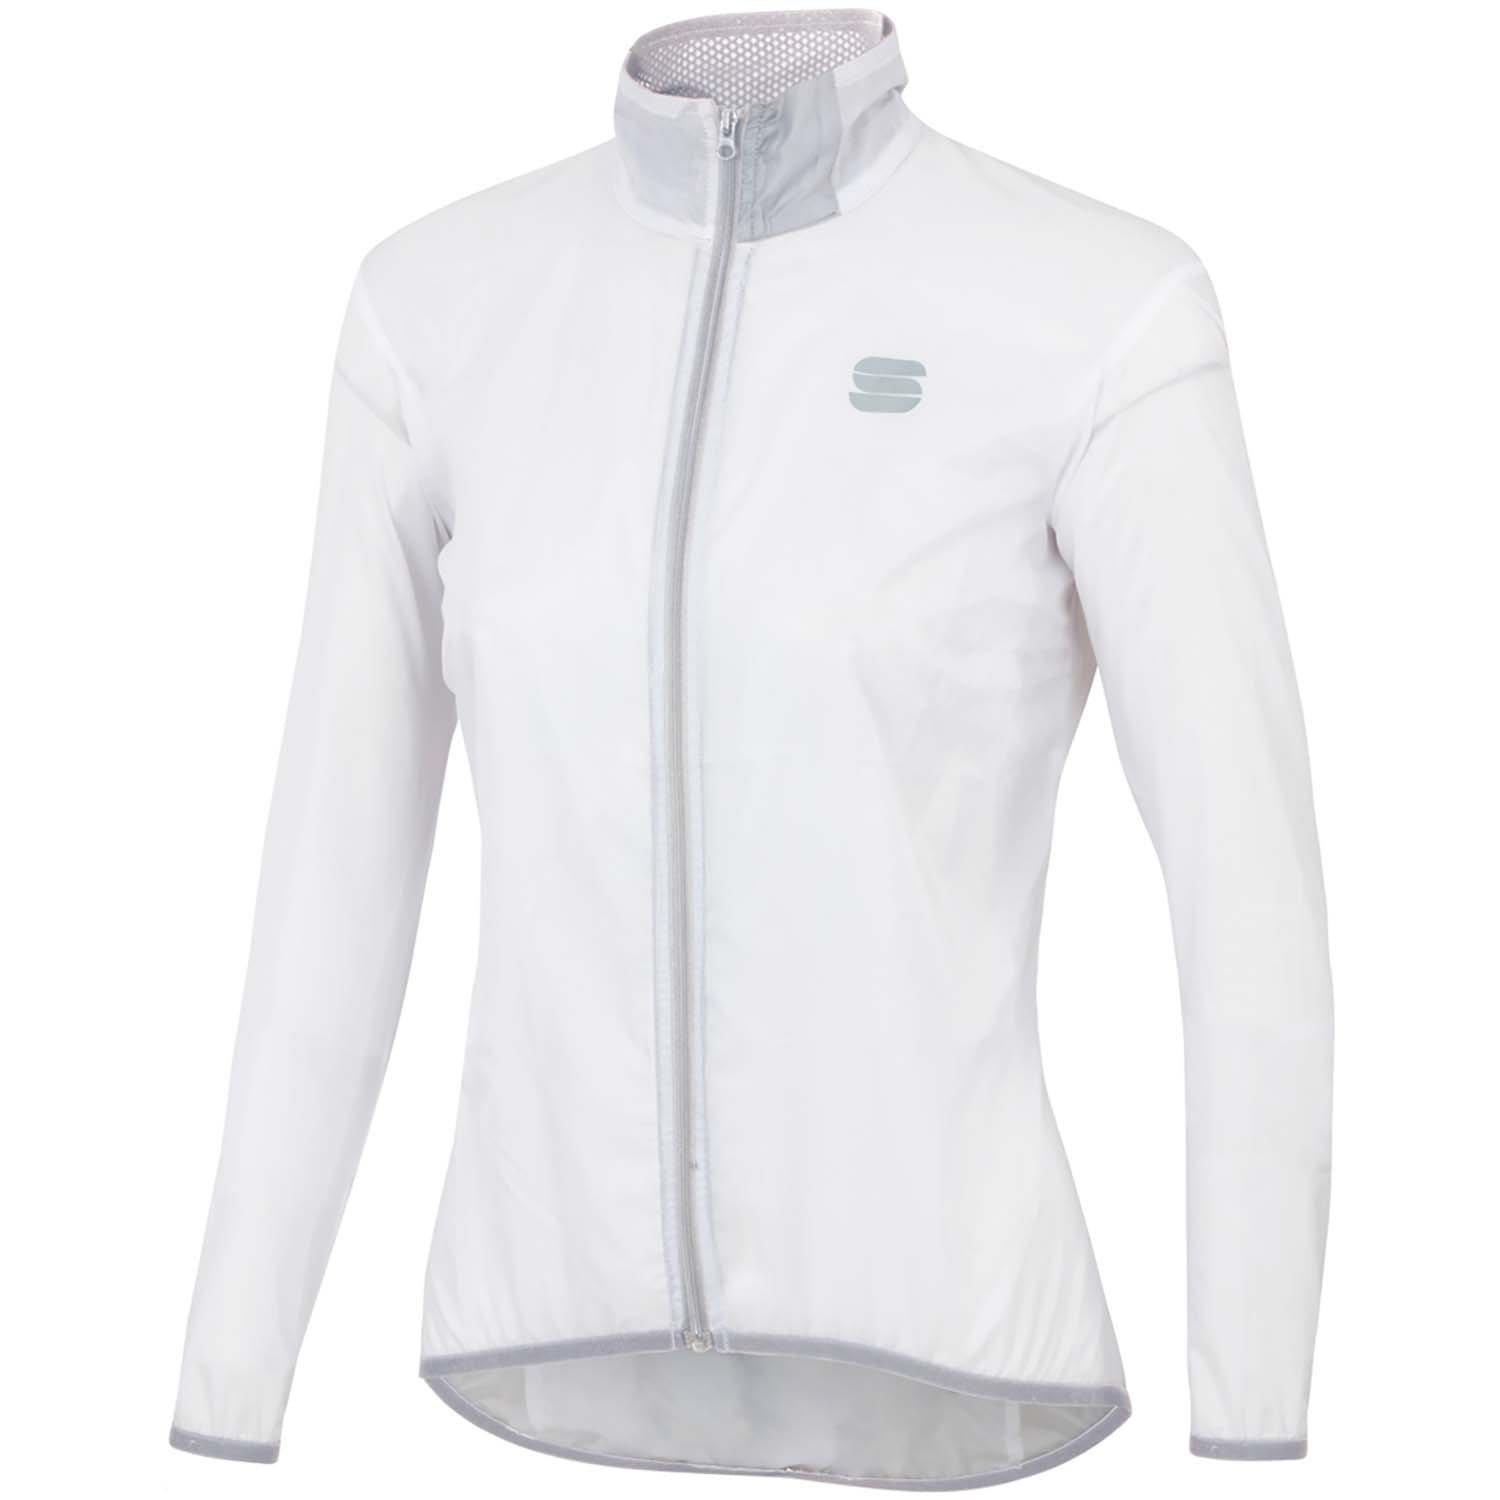 Sportful-Sportful Hot Pack Easylight Women's Jacket-White-XS-SF020281011-saddleback-elite-performance-cycling